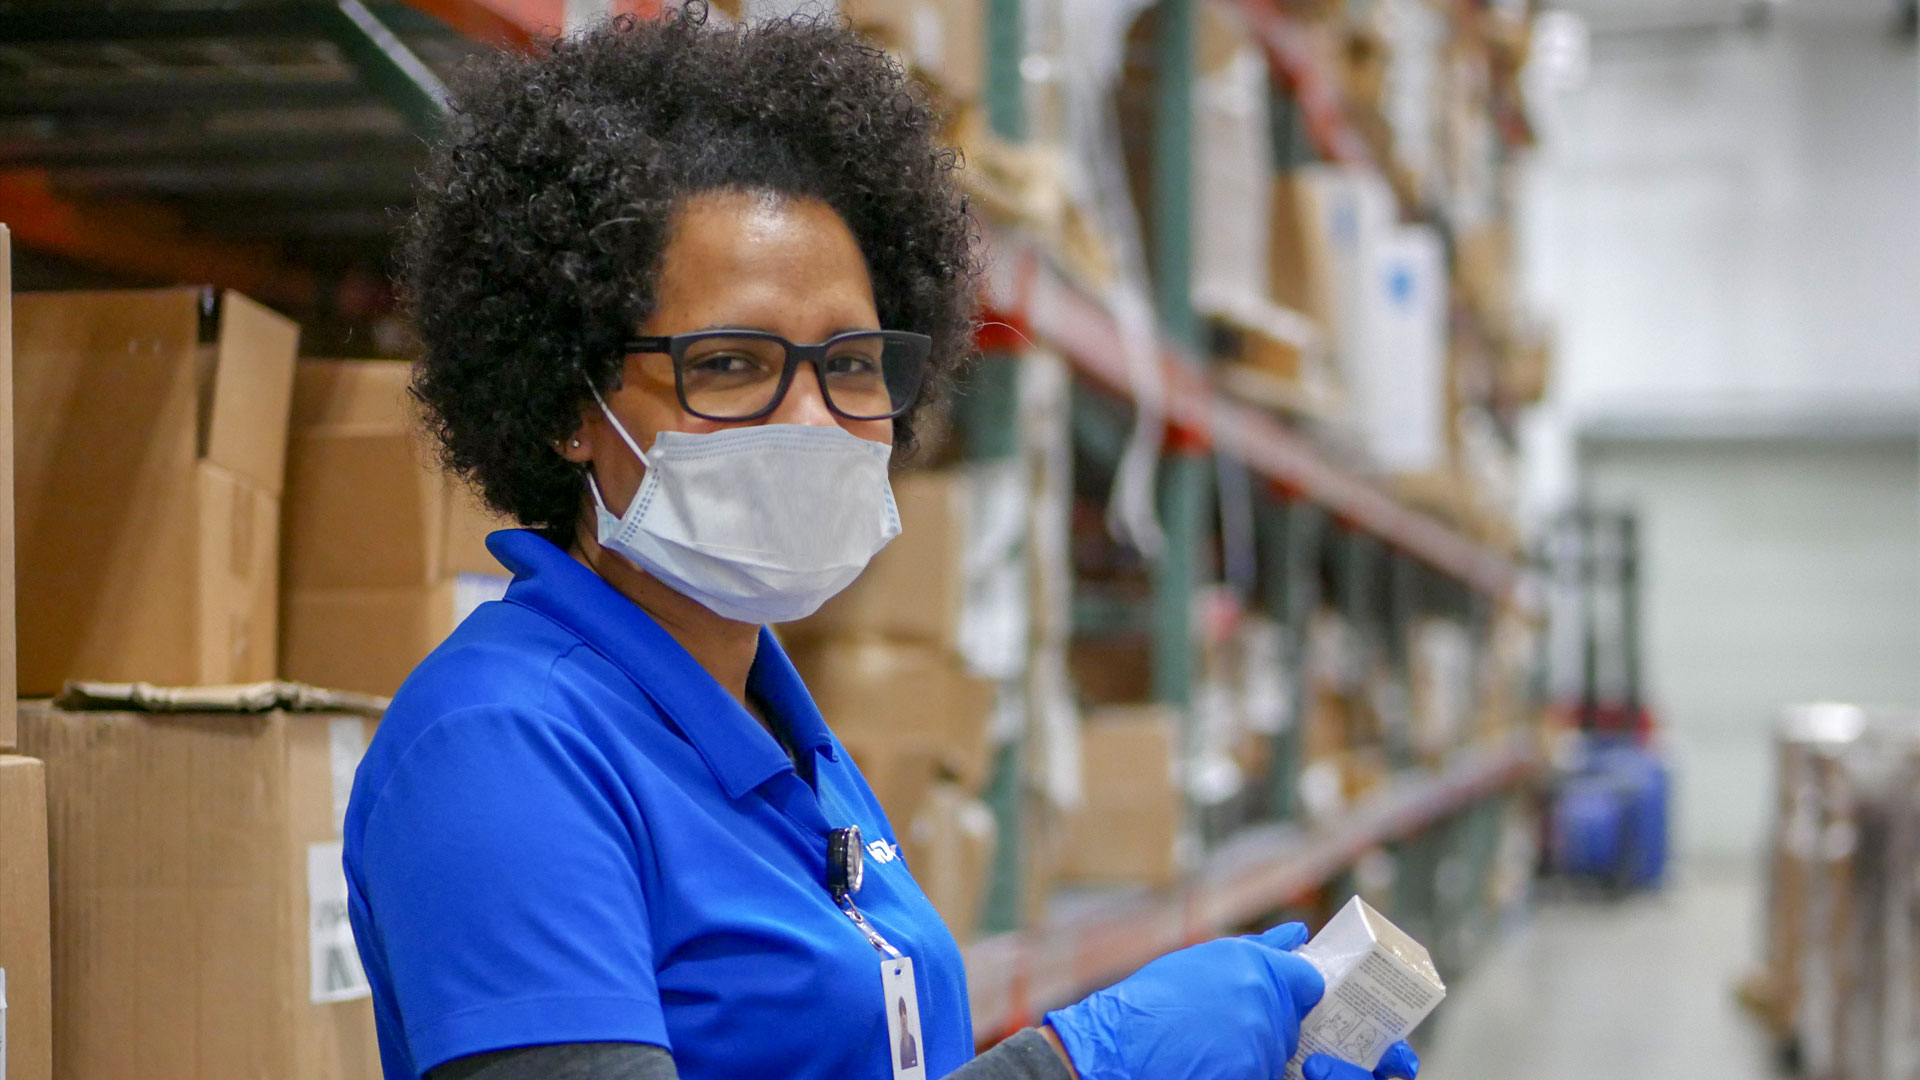 Warehouse Technician wearing PPE at the Pharmaceutical Logistics warehouse as required by policies